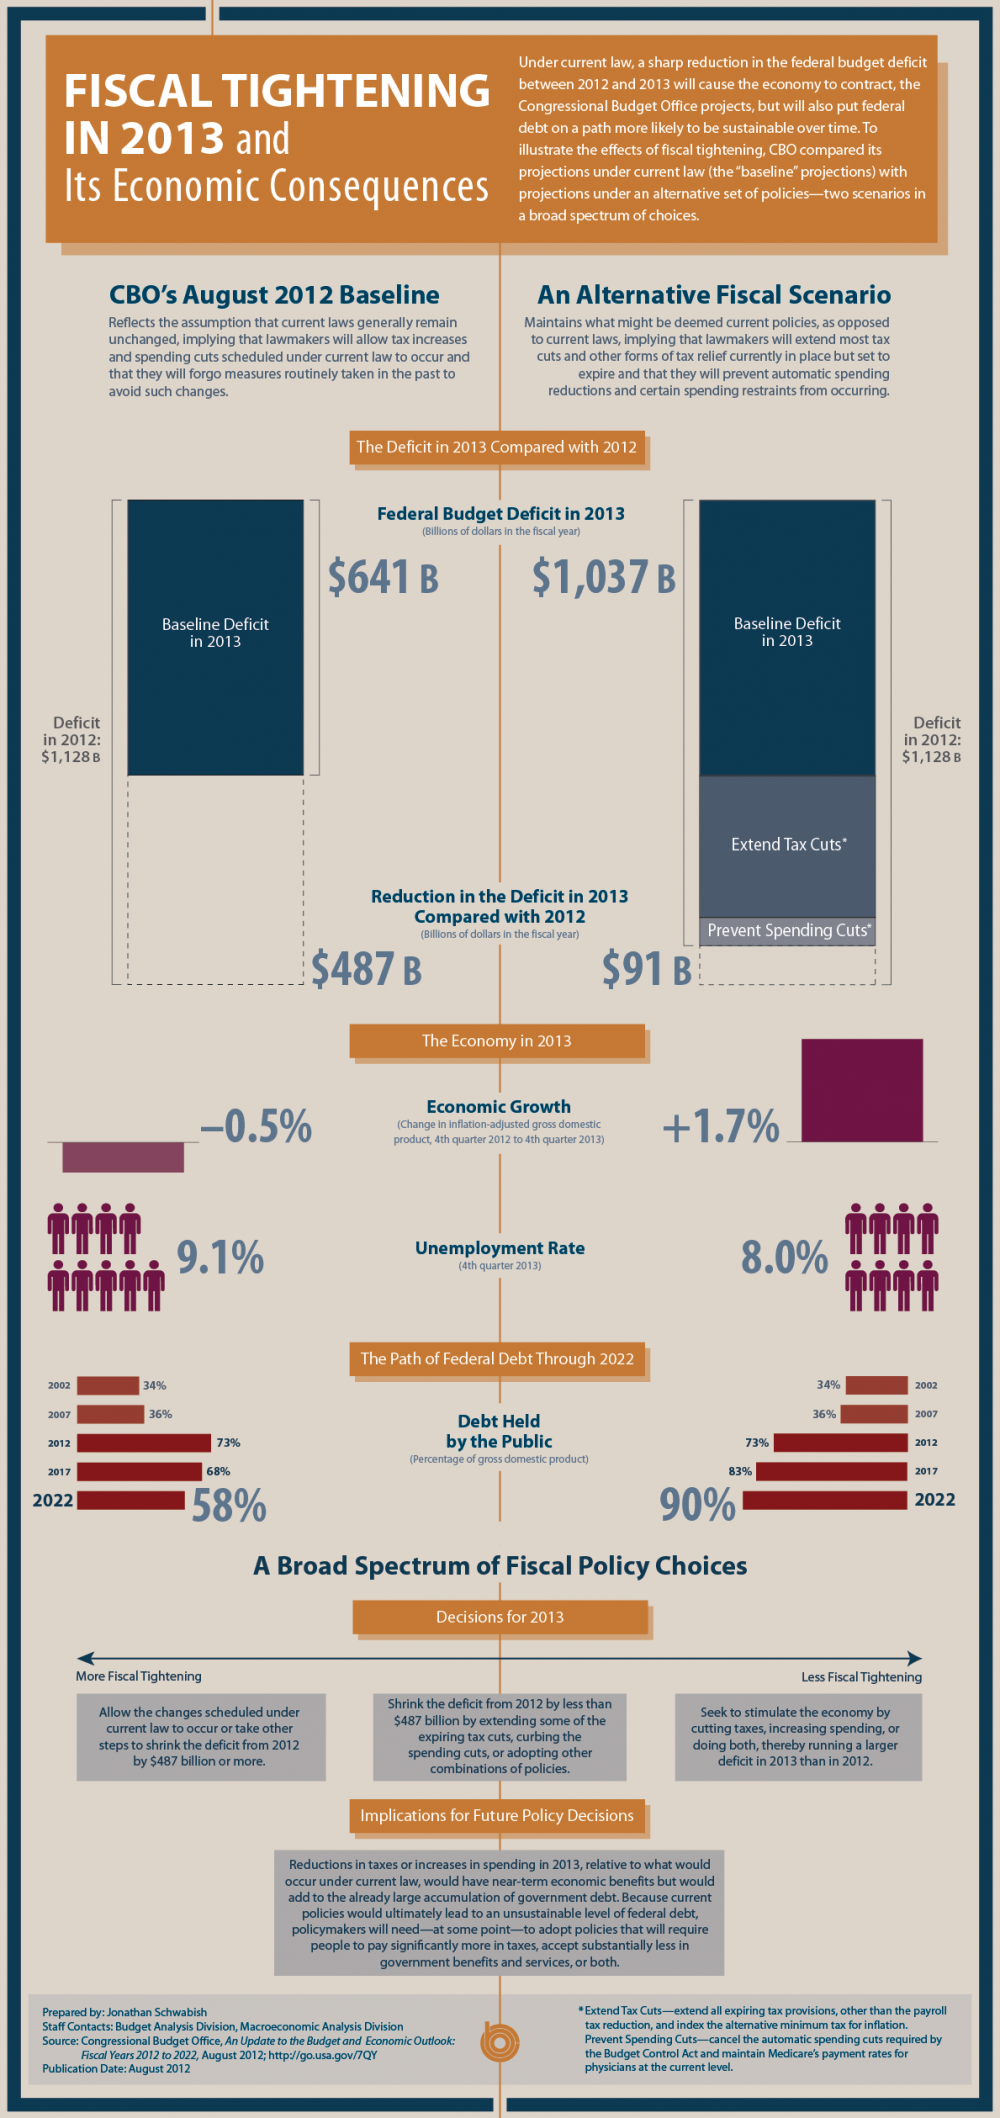 us fiscal tightening 2013-infographic